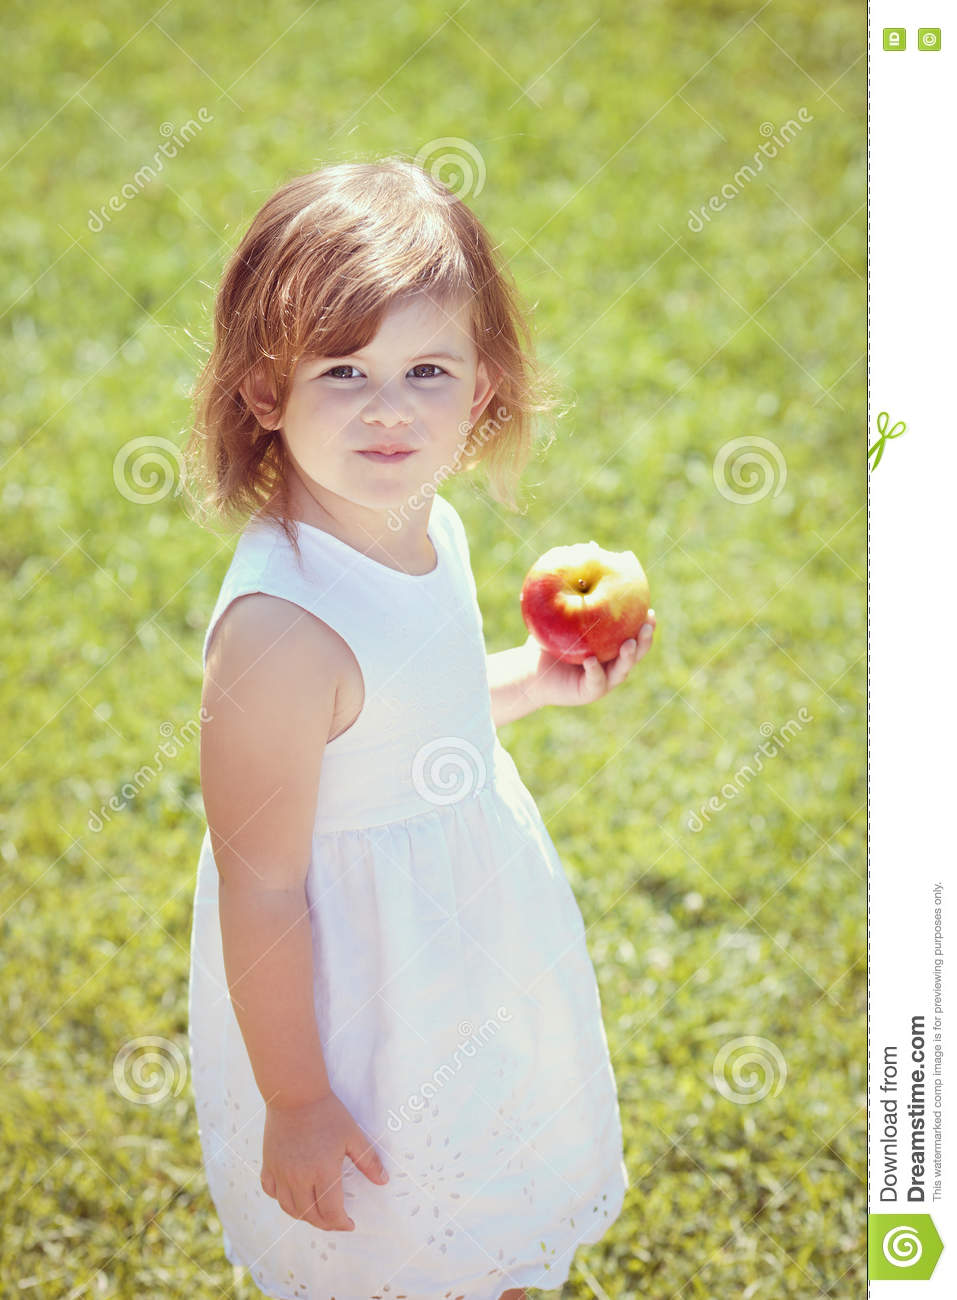 ad7481e43e0 Closeup portrait of a adorable funny toddler child girl holding eating apple  in park outside on summer day